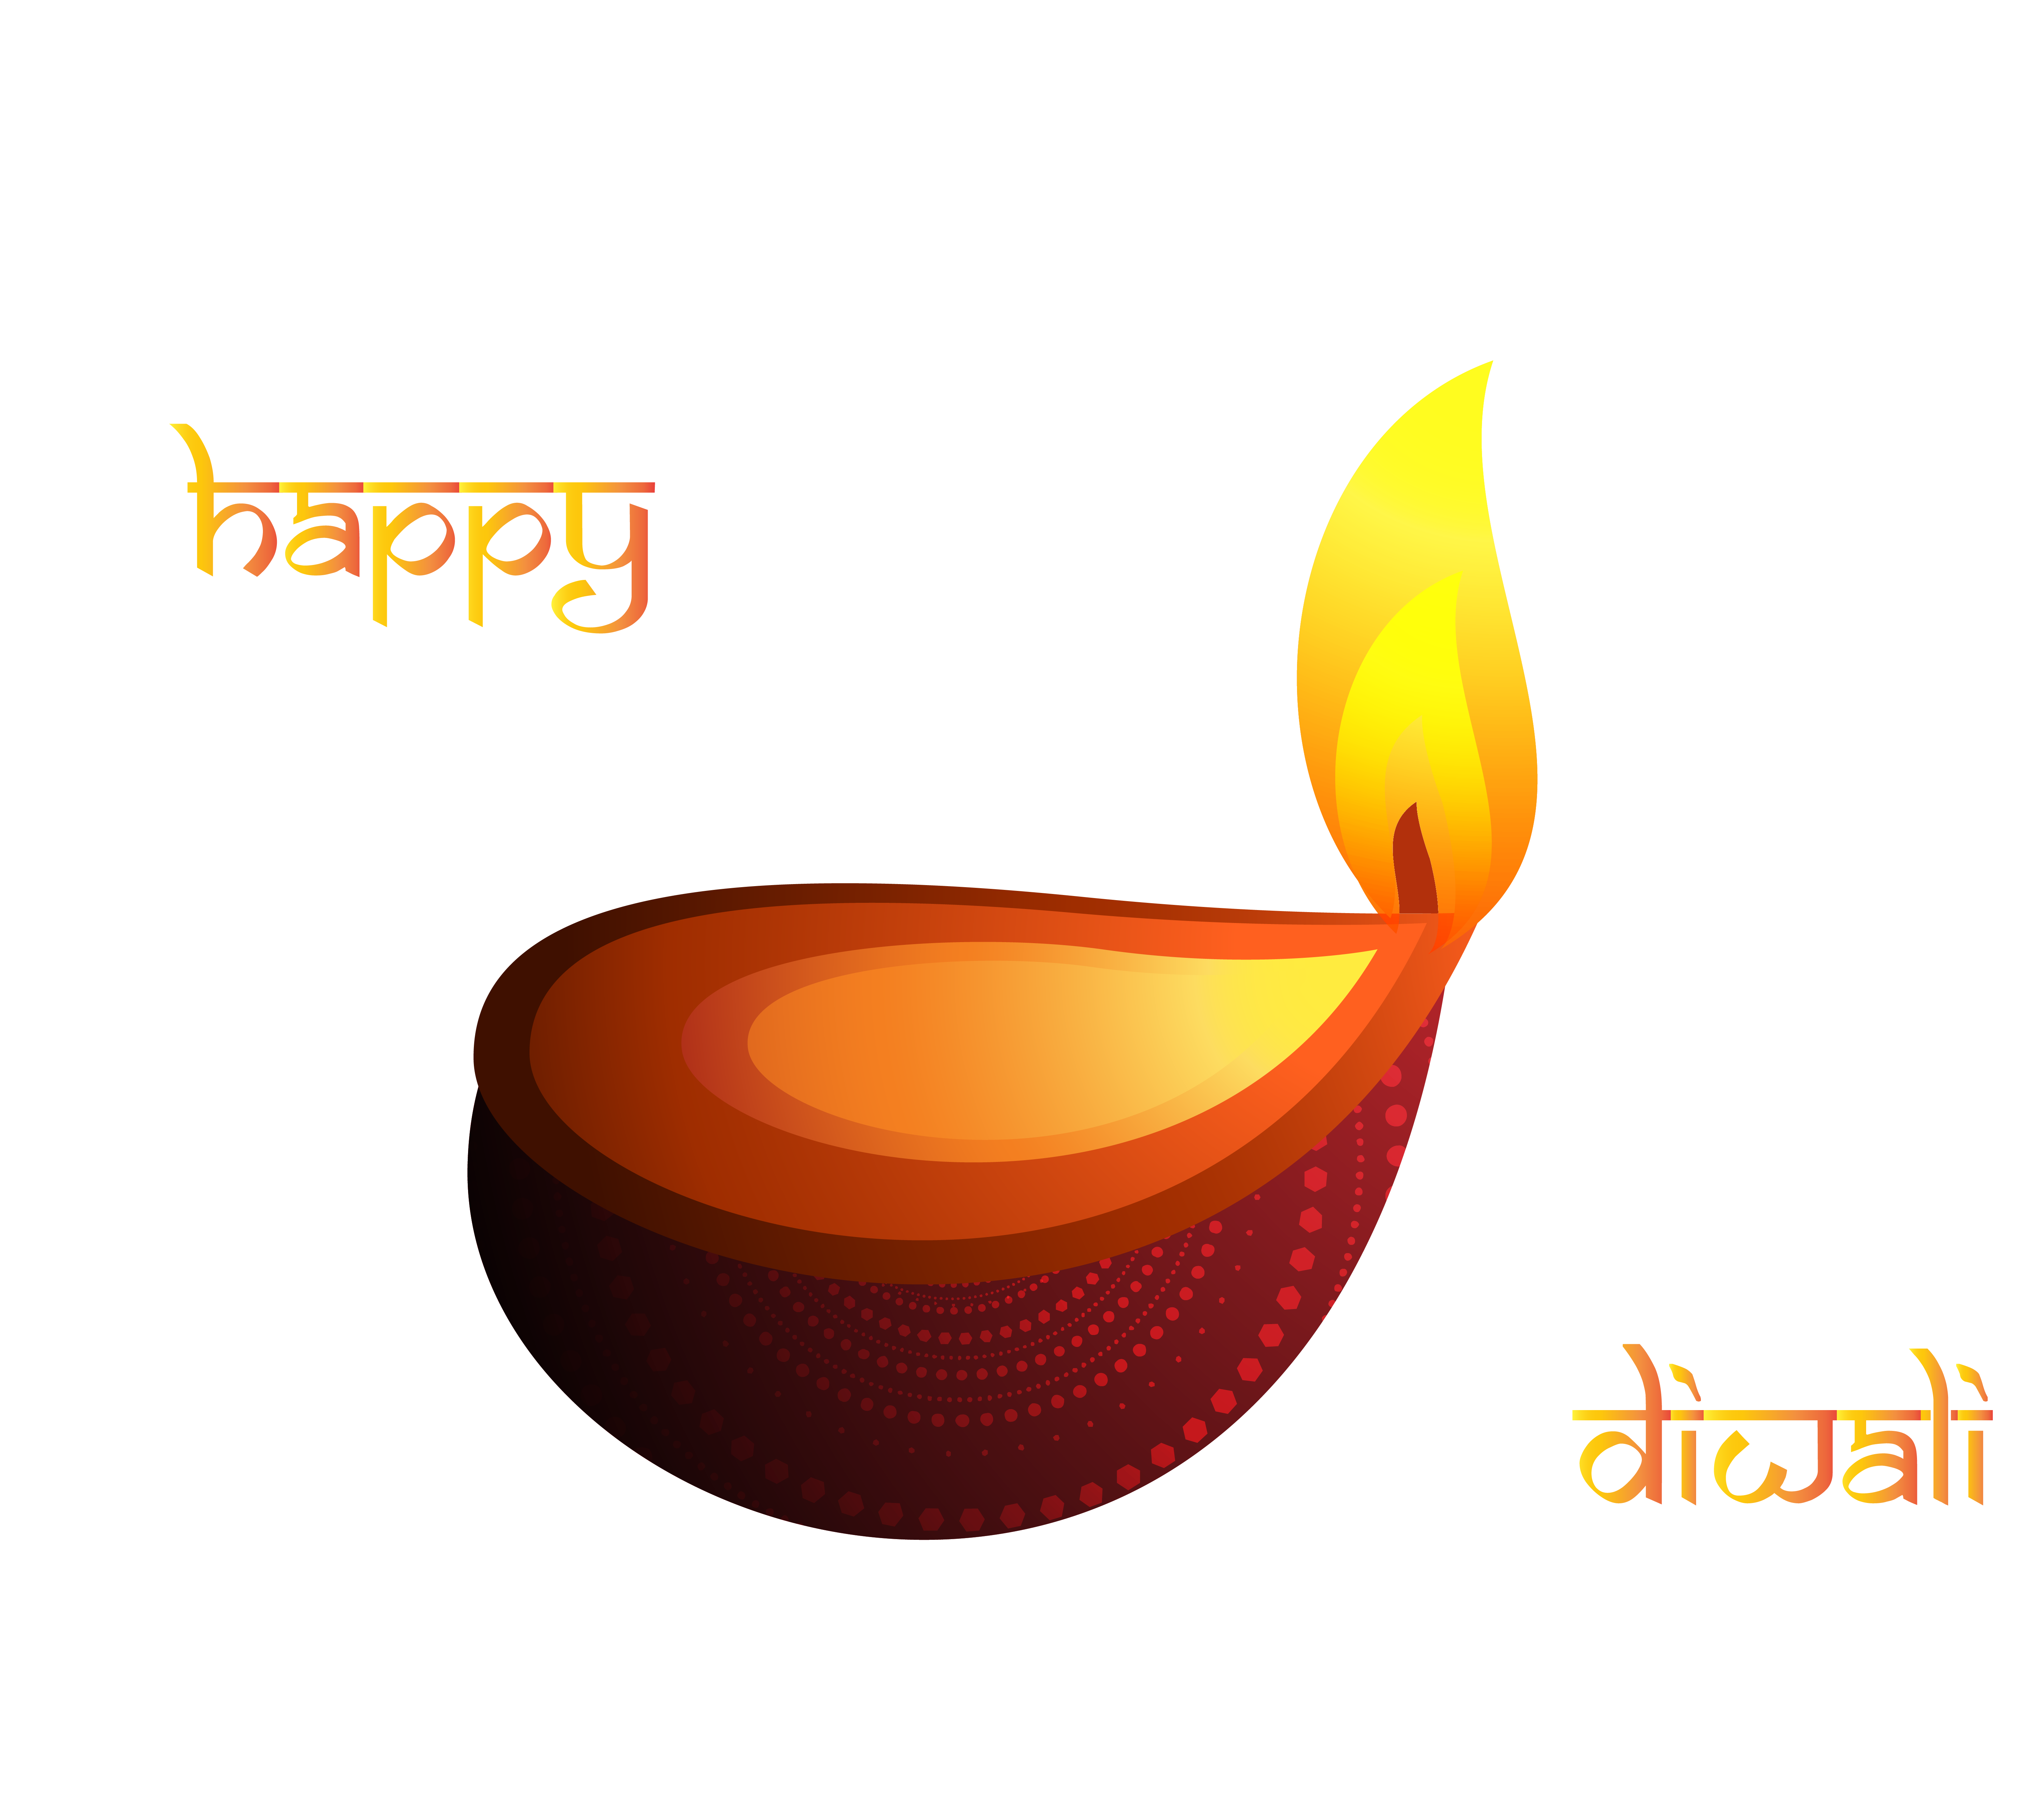 Diwali clipart hd graphic free library Free Diwali Cliparts, Download Free Clip Art, Free Clip Art on ... graphic free library